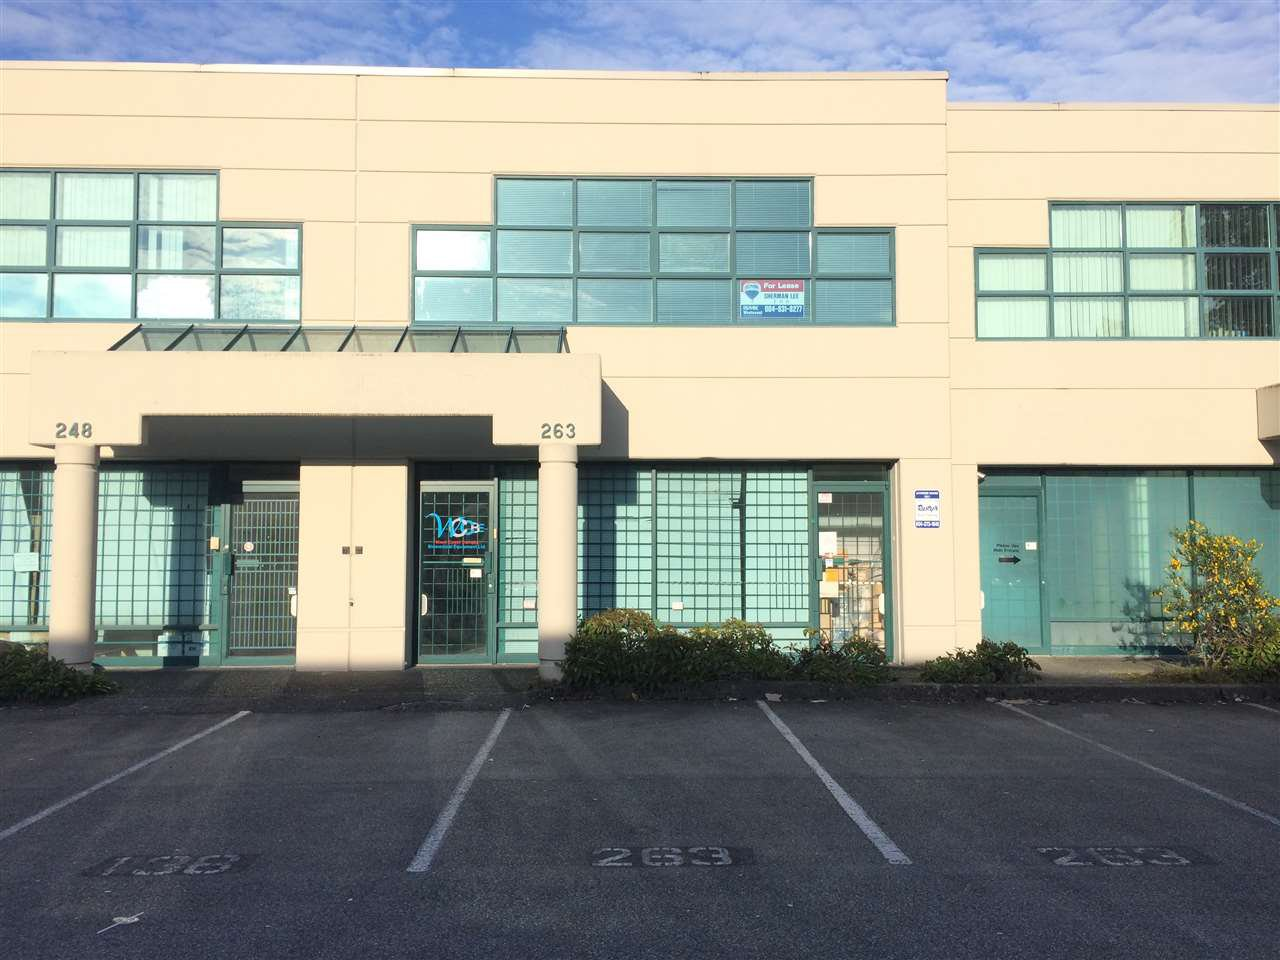 Main Photo: 263 13986 CAMBIE ROAD in Richmond: East Cambie Industrial for sale : MLS®# C8032455